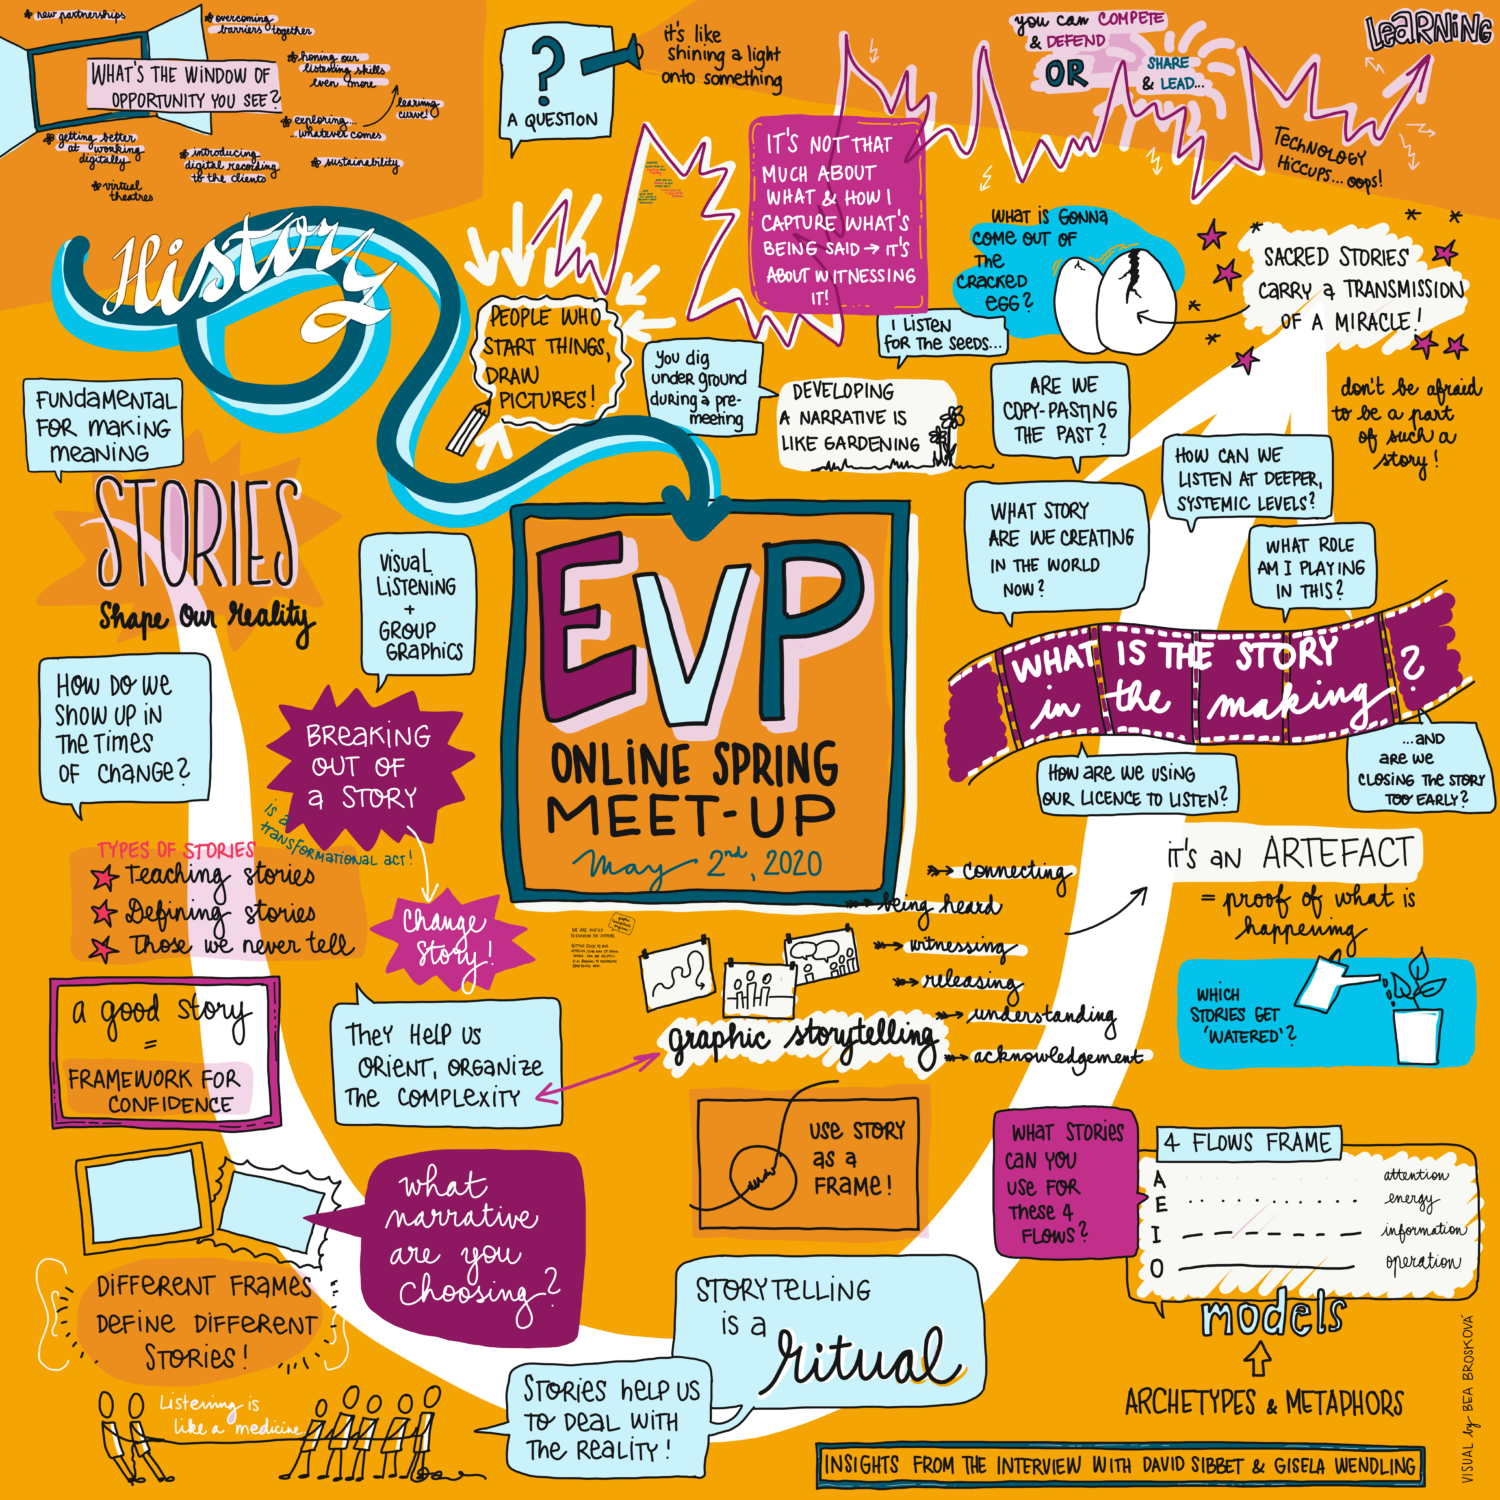 Visual Summary of the Insights from the Interview with David Sibbet and Gisela Wendling; Visual by Bea Broskova